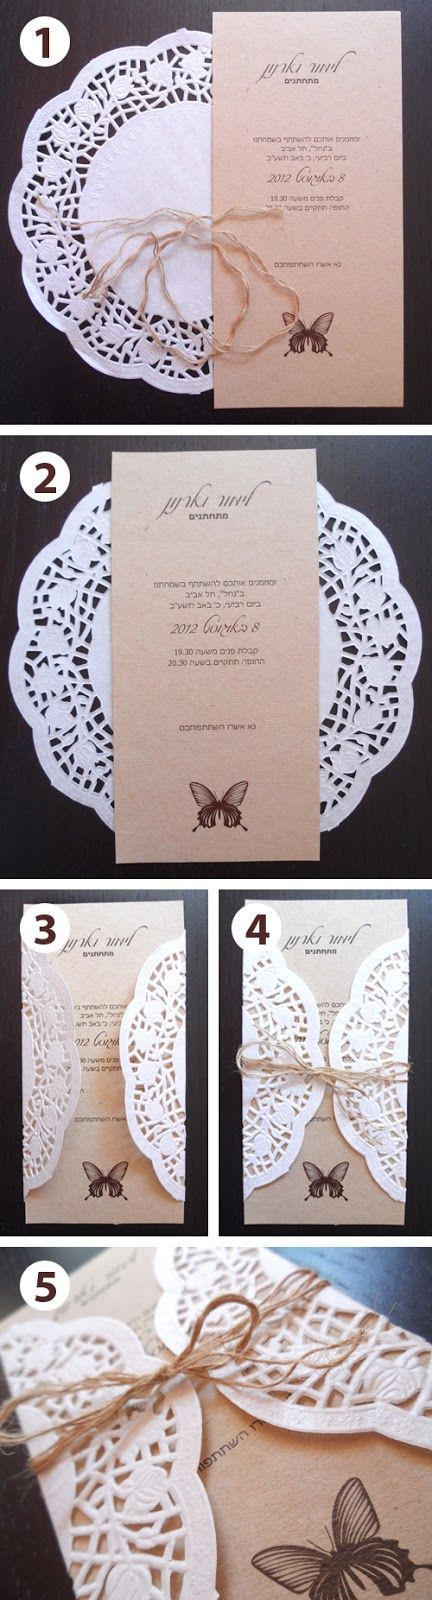 50 unique diy wedding invitation ideas tortenspitze. Black Bedroom Furniture Sets. Home Design Ideas